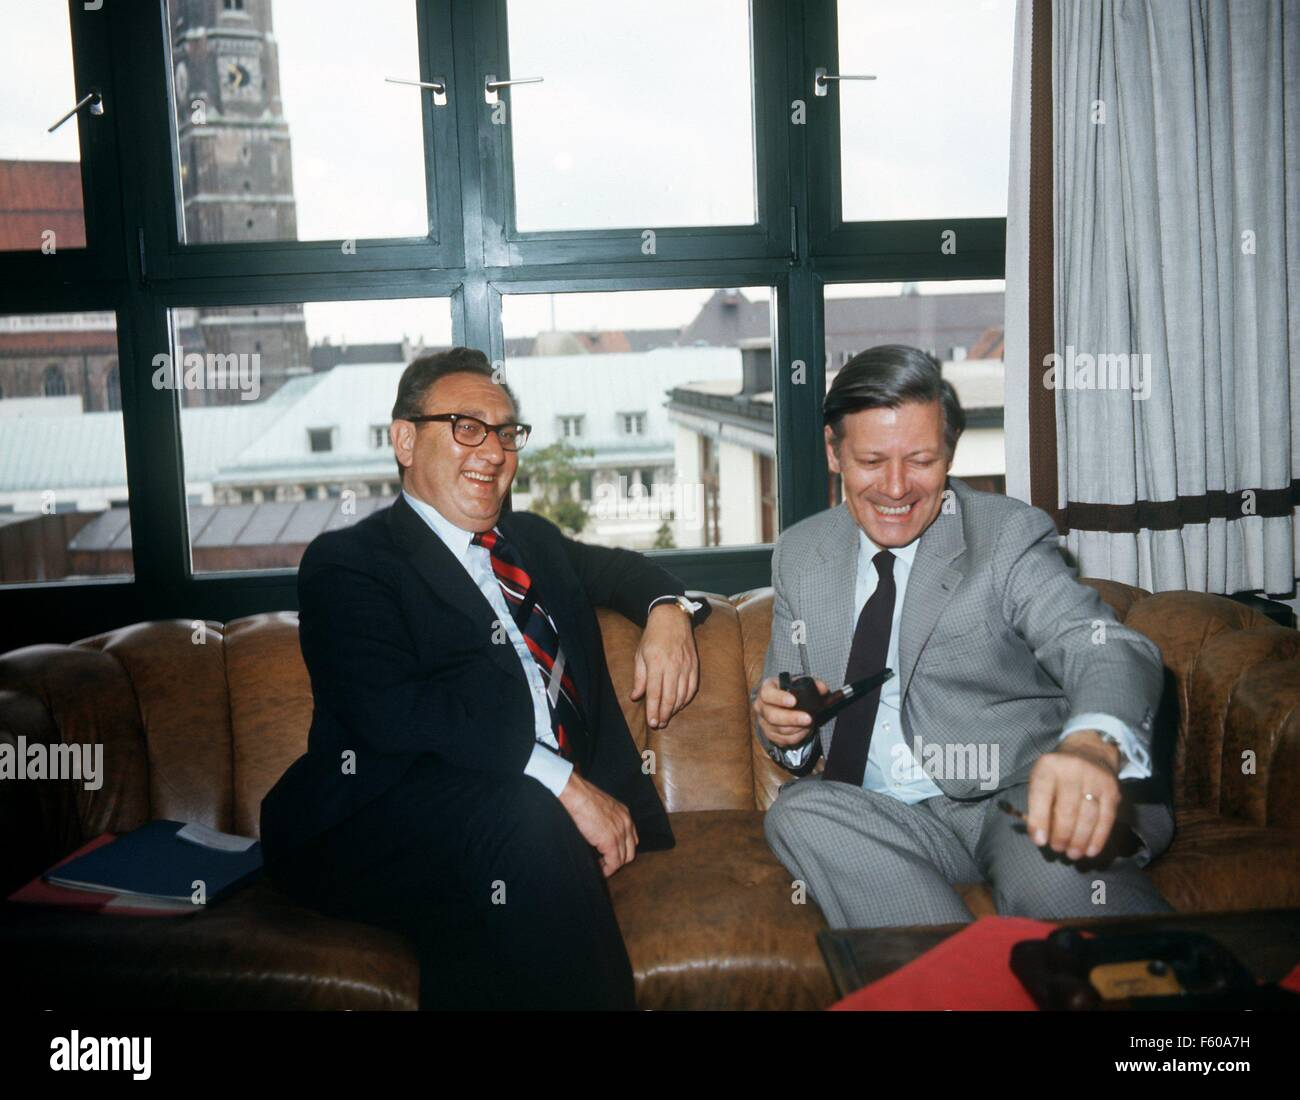 Henry Kissinger in a conversation with Chancellor Helmut Schmidt (R, SPD) in Munich in 1974. Stock Photo